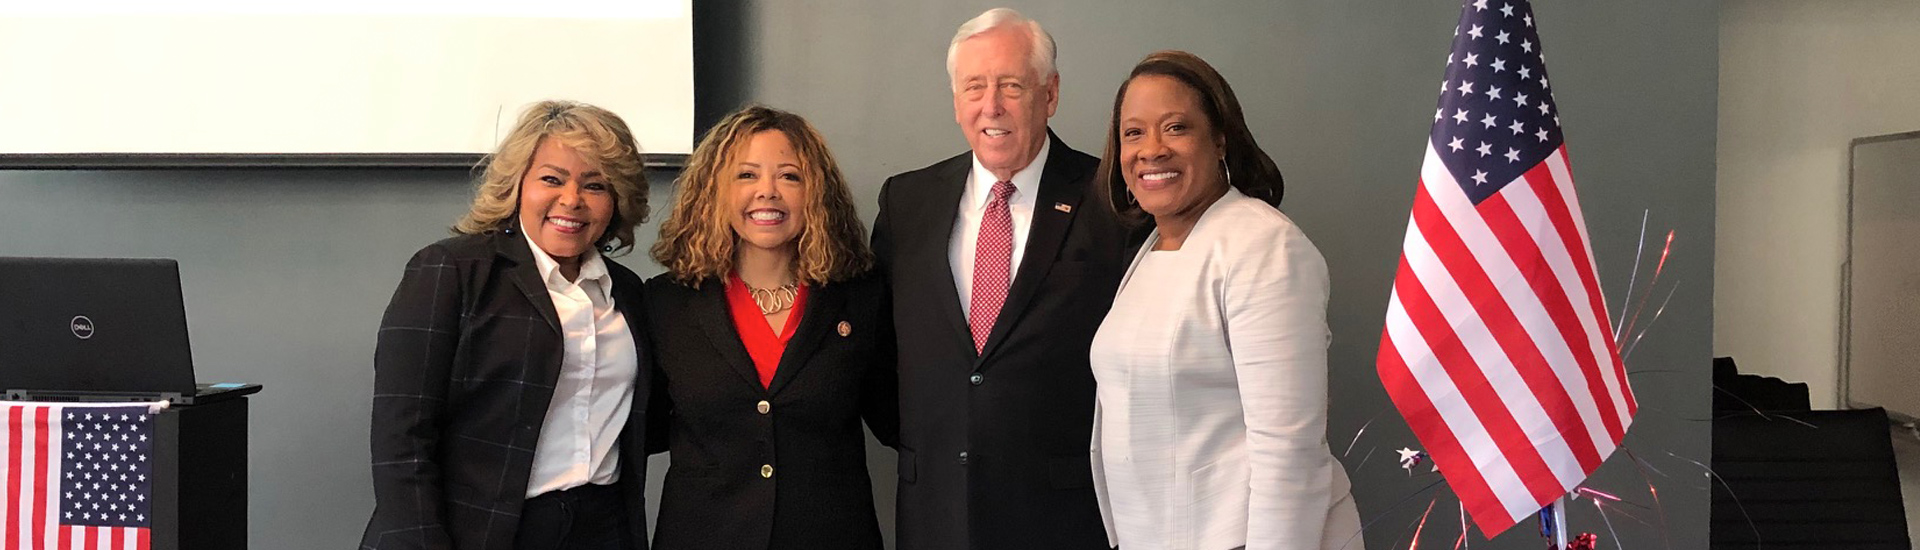 Hoyer standing with other professionally dressed women by an American flag